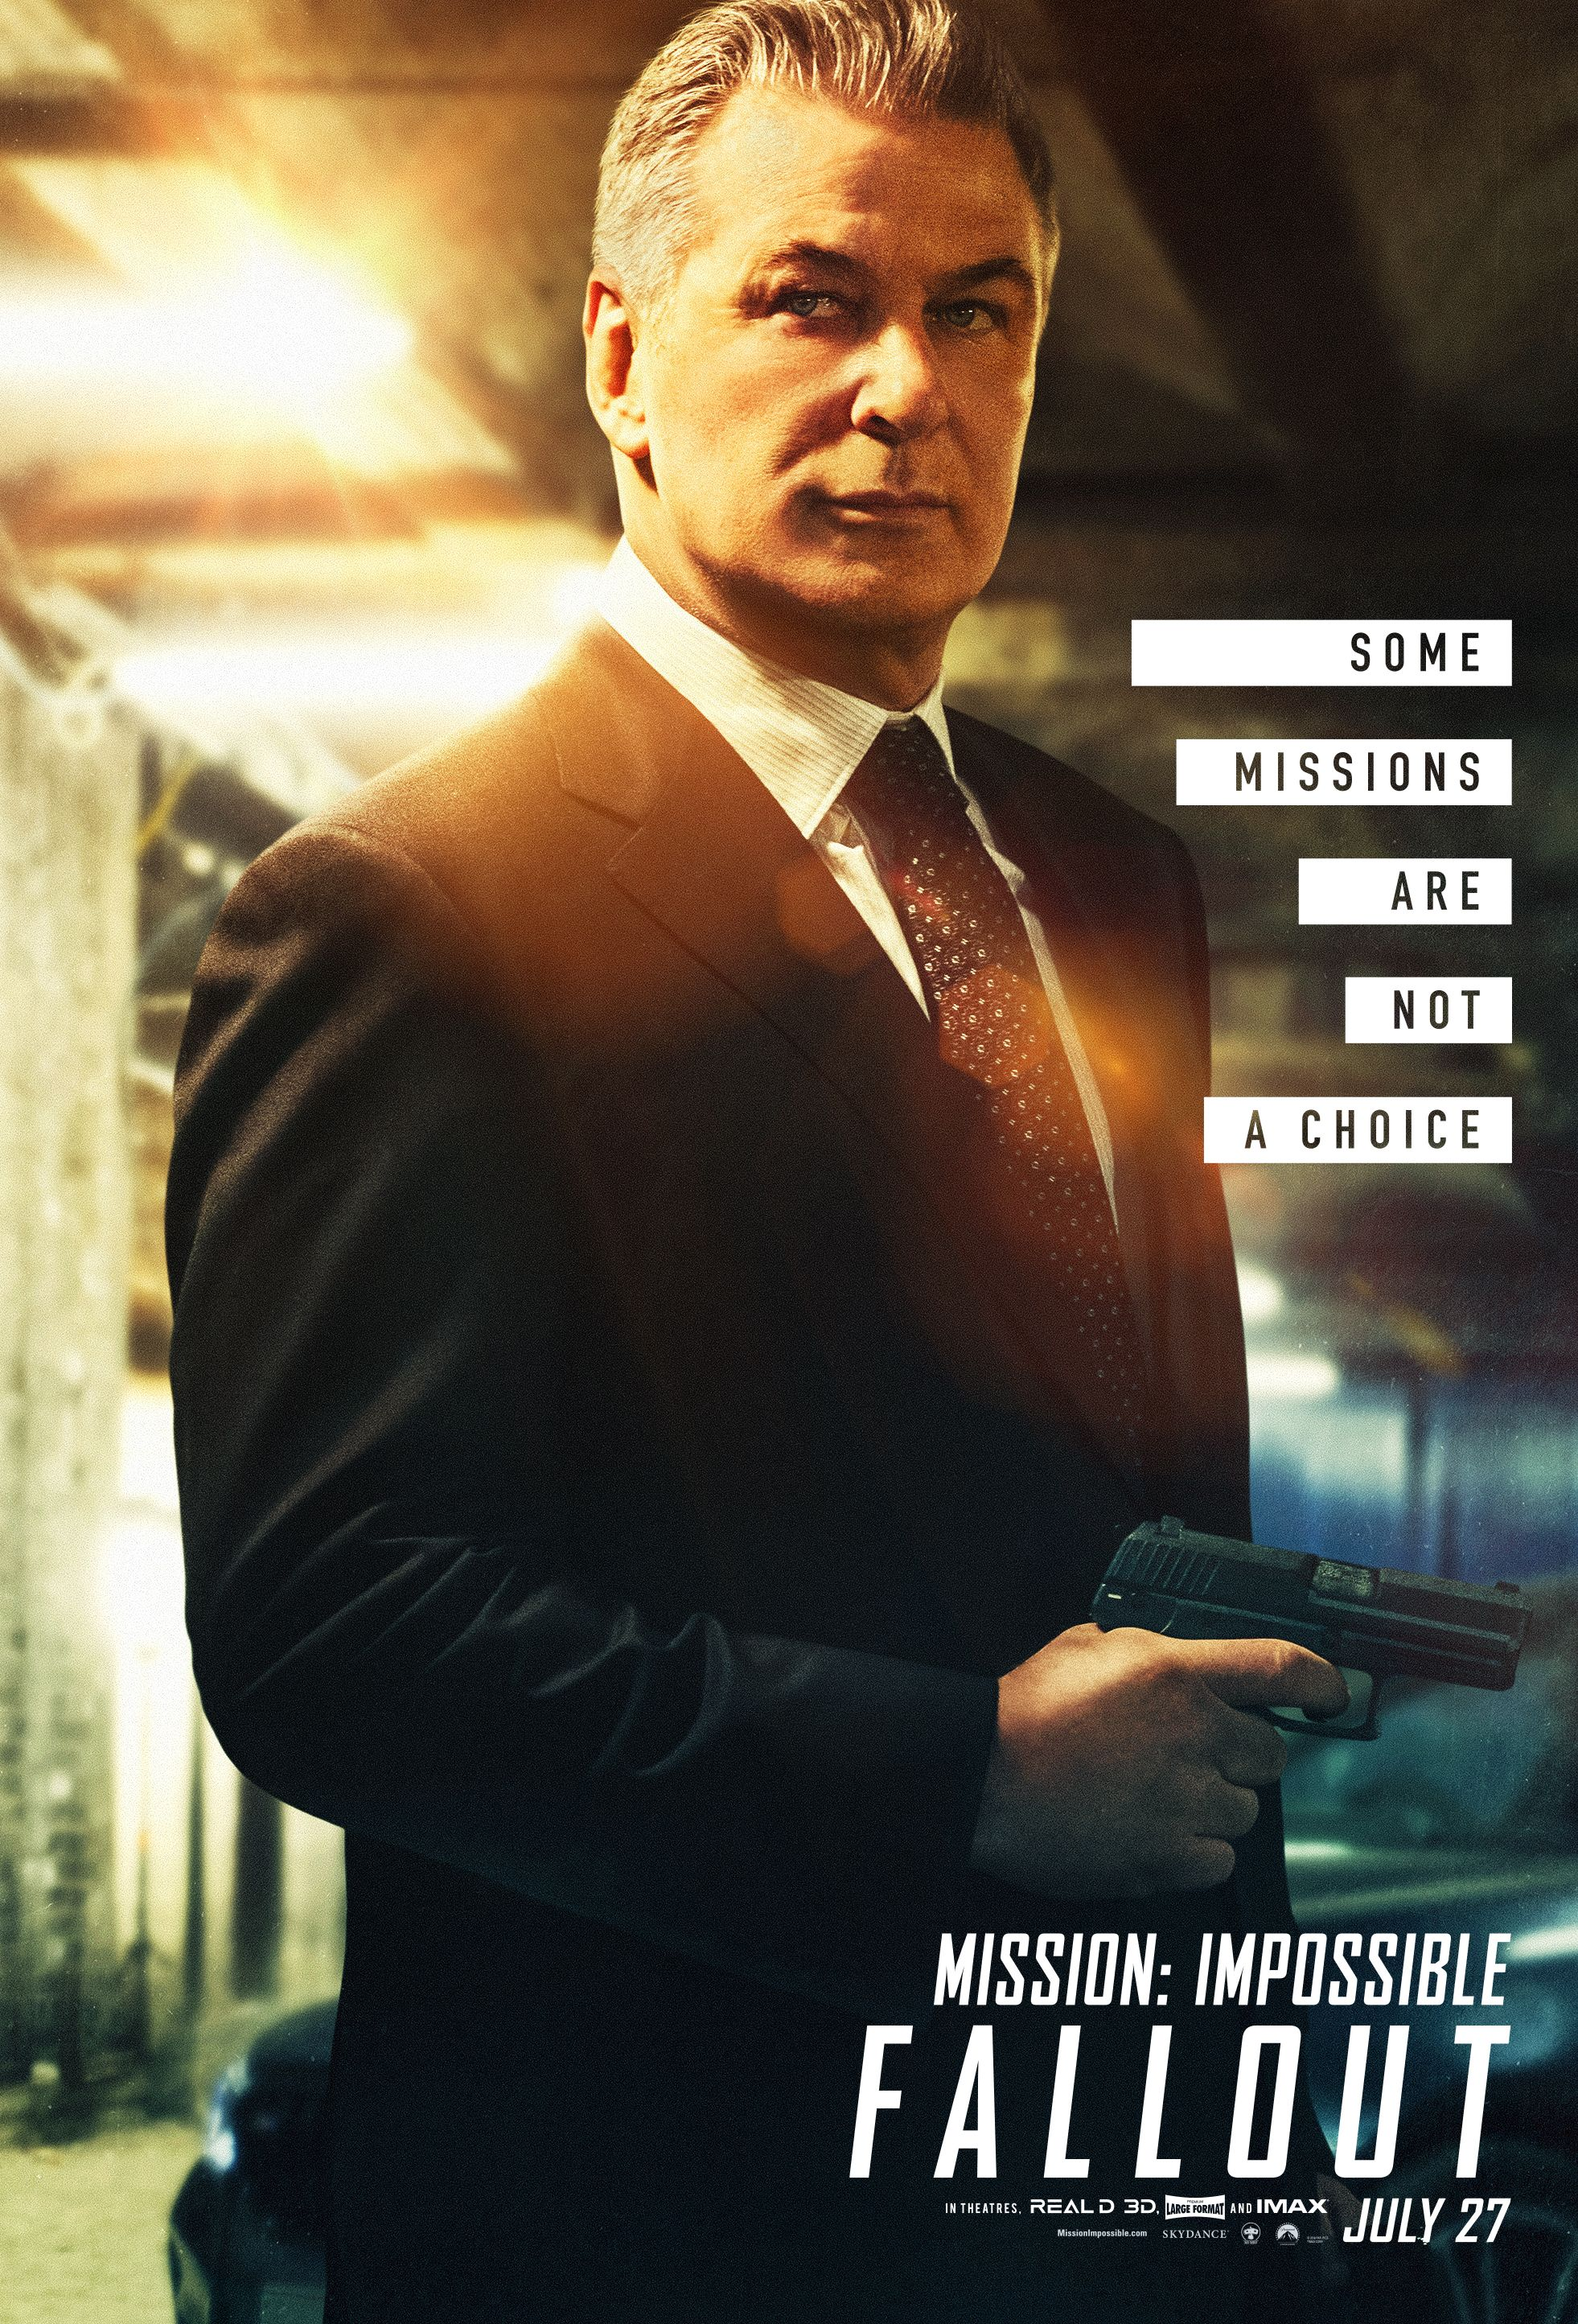 Alecbaldwin As Alan Hunley Missionimpossible Mission Impossible Fallout Fallout Movie Mission Impossible Movie